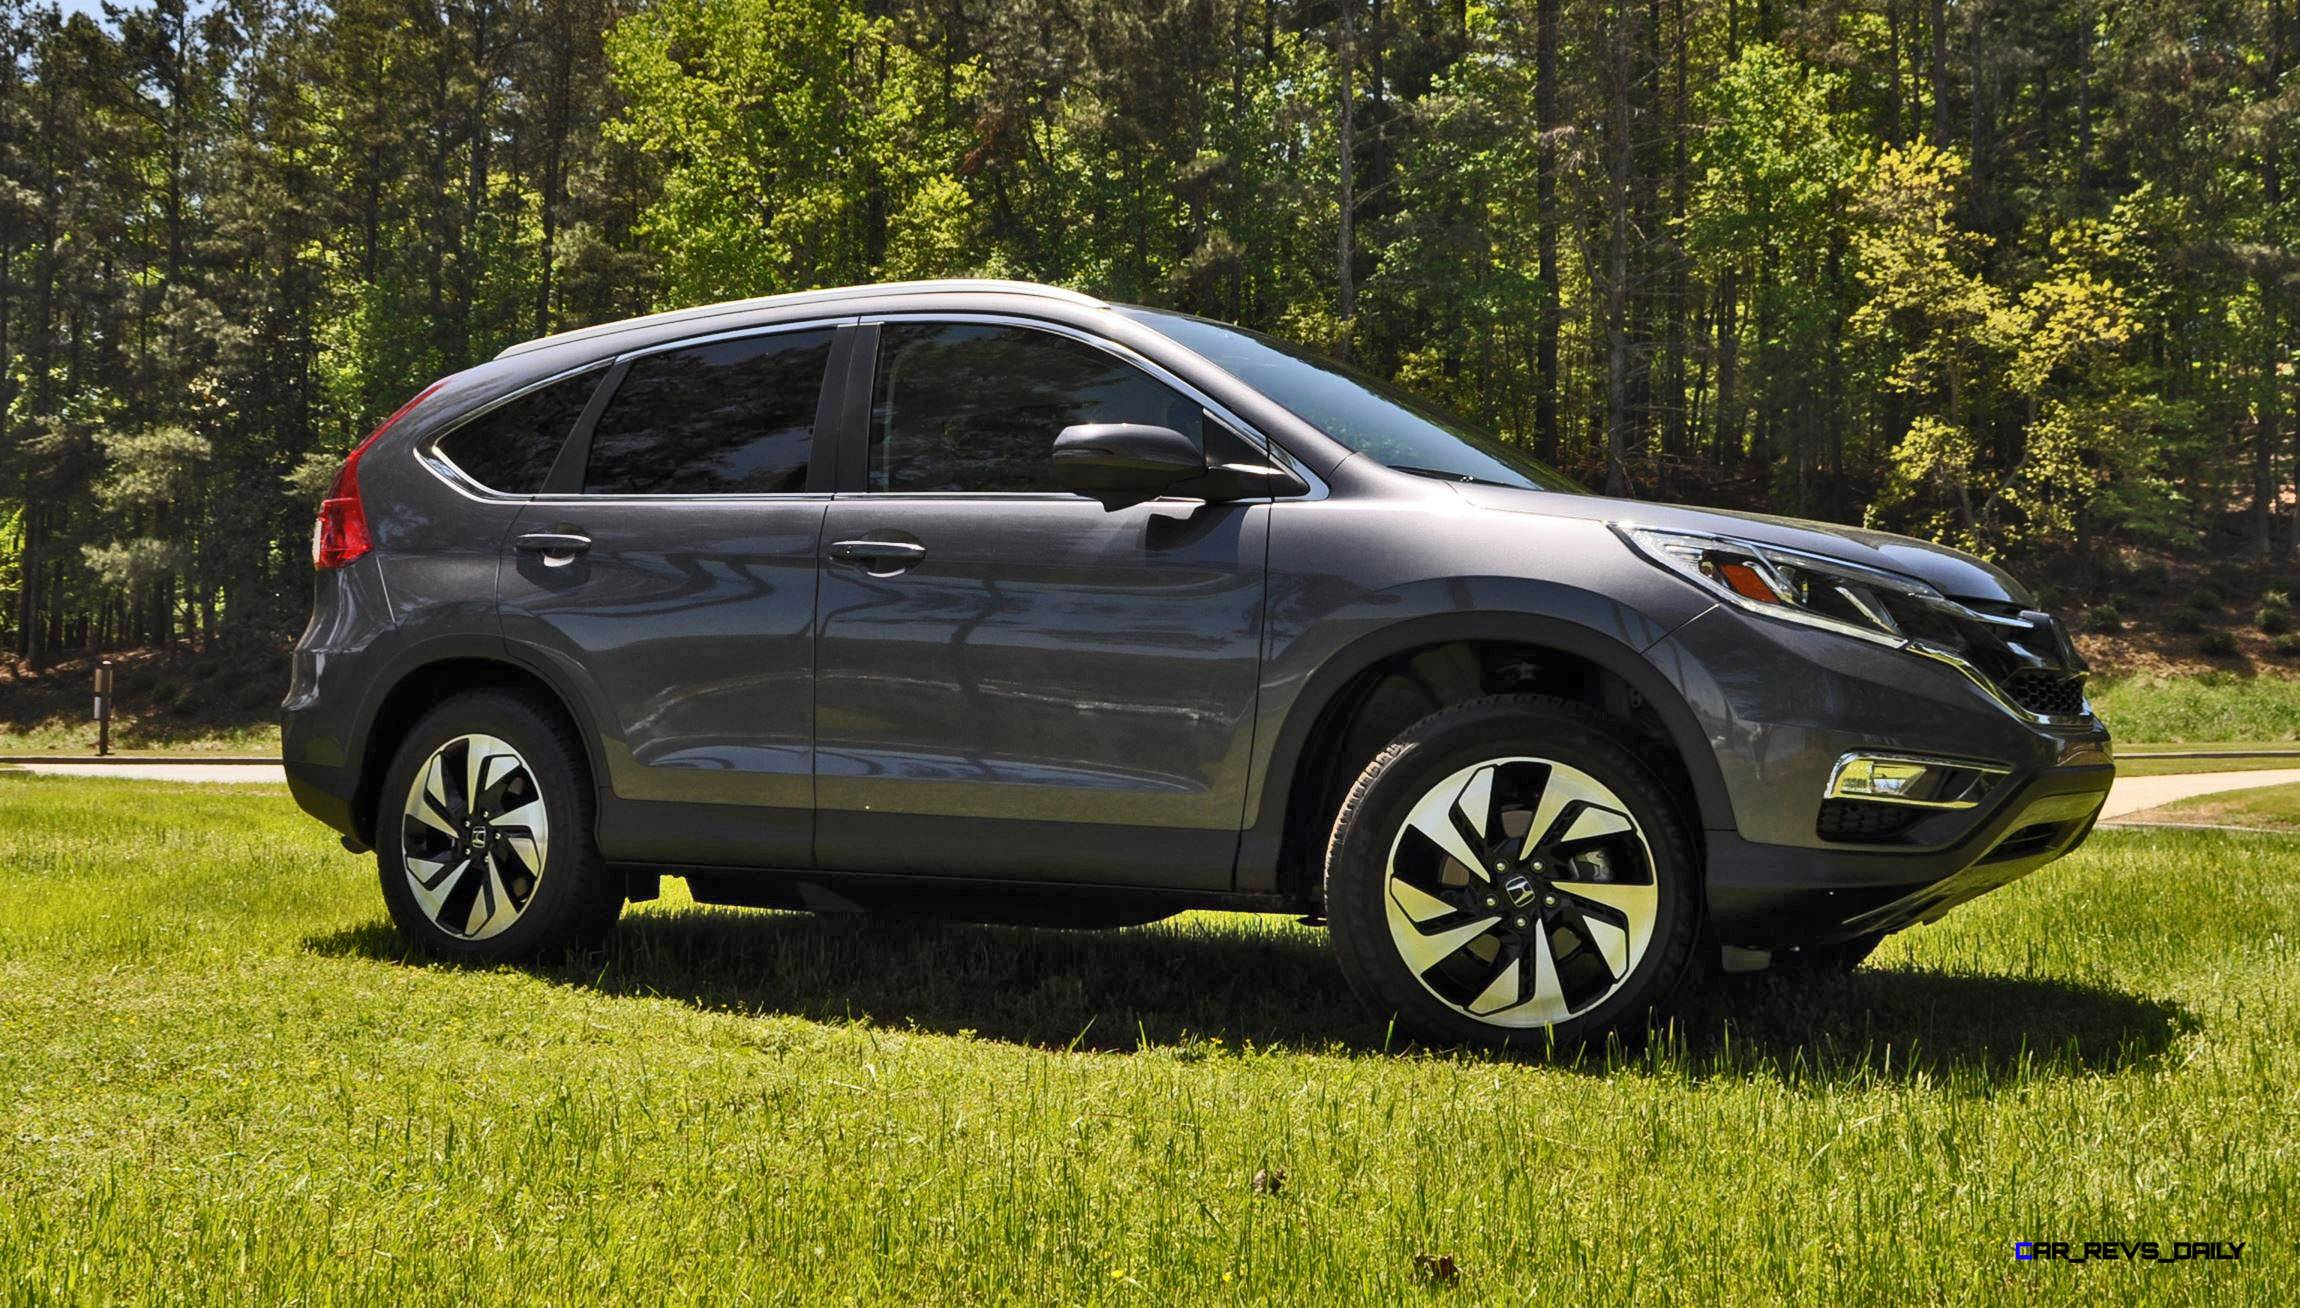 2015 honda cr v touring awd review 47. Black Bedroom Furniture Sets. Home Design Ideas